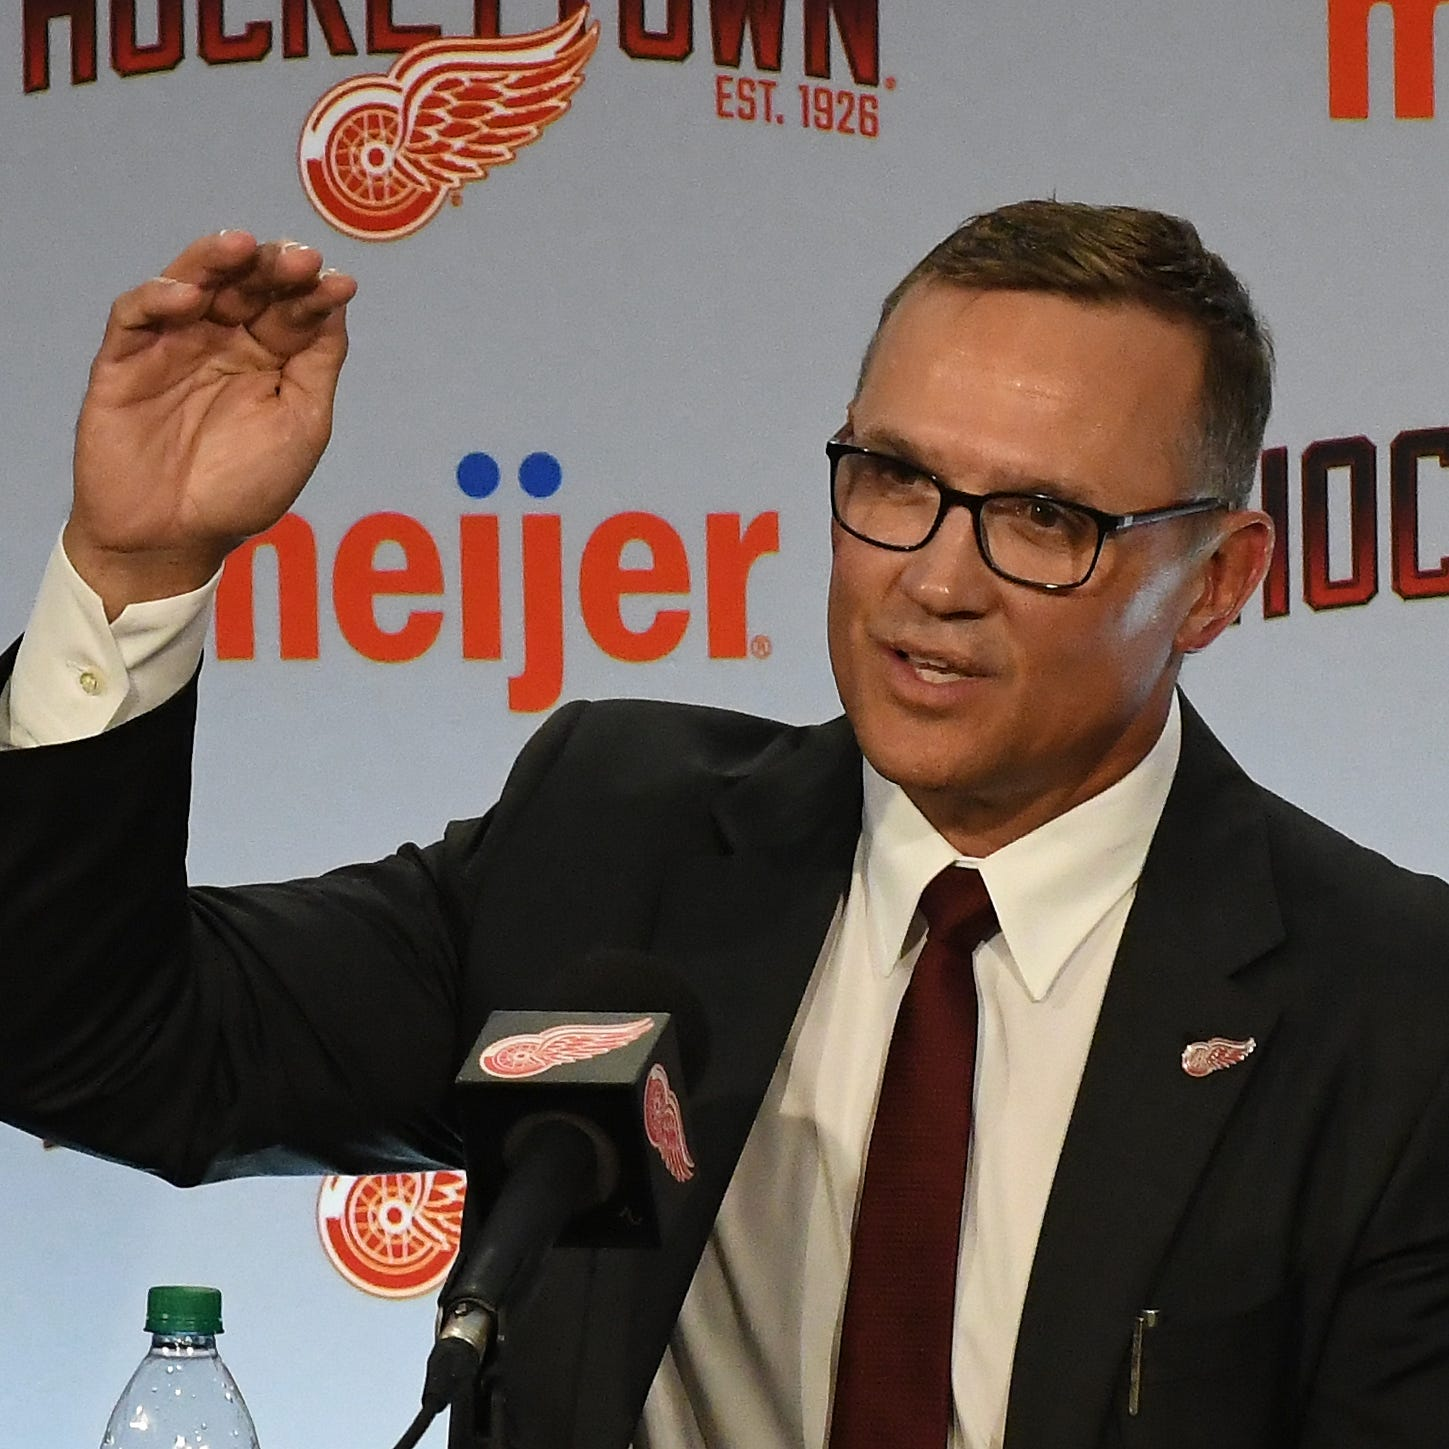 The Captain's back! Steve Yzerman comes full-circle as Red Wings' new GM